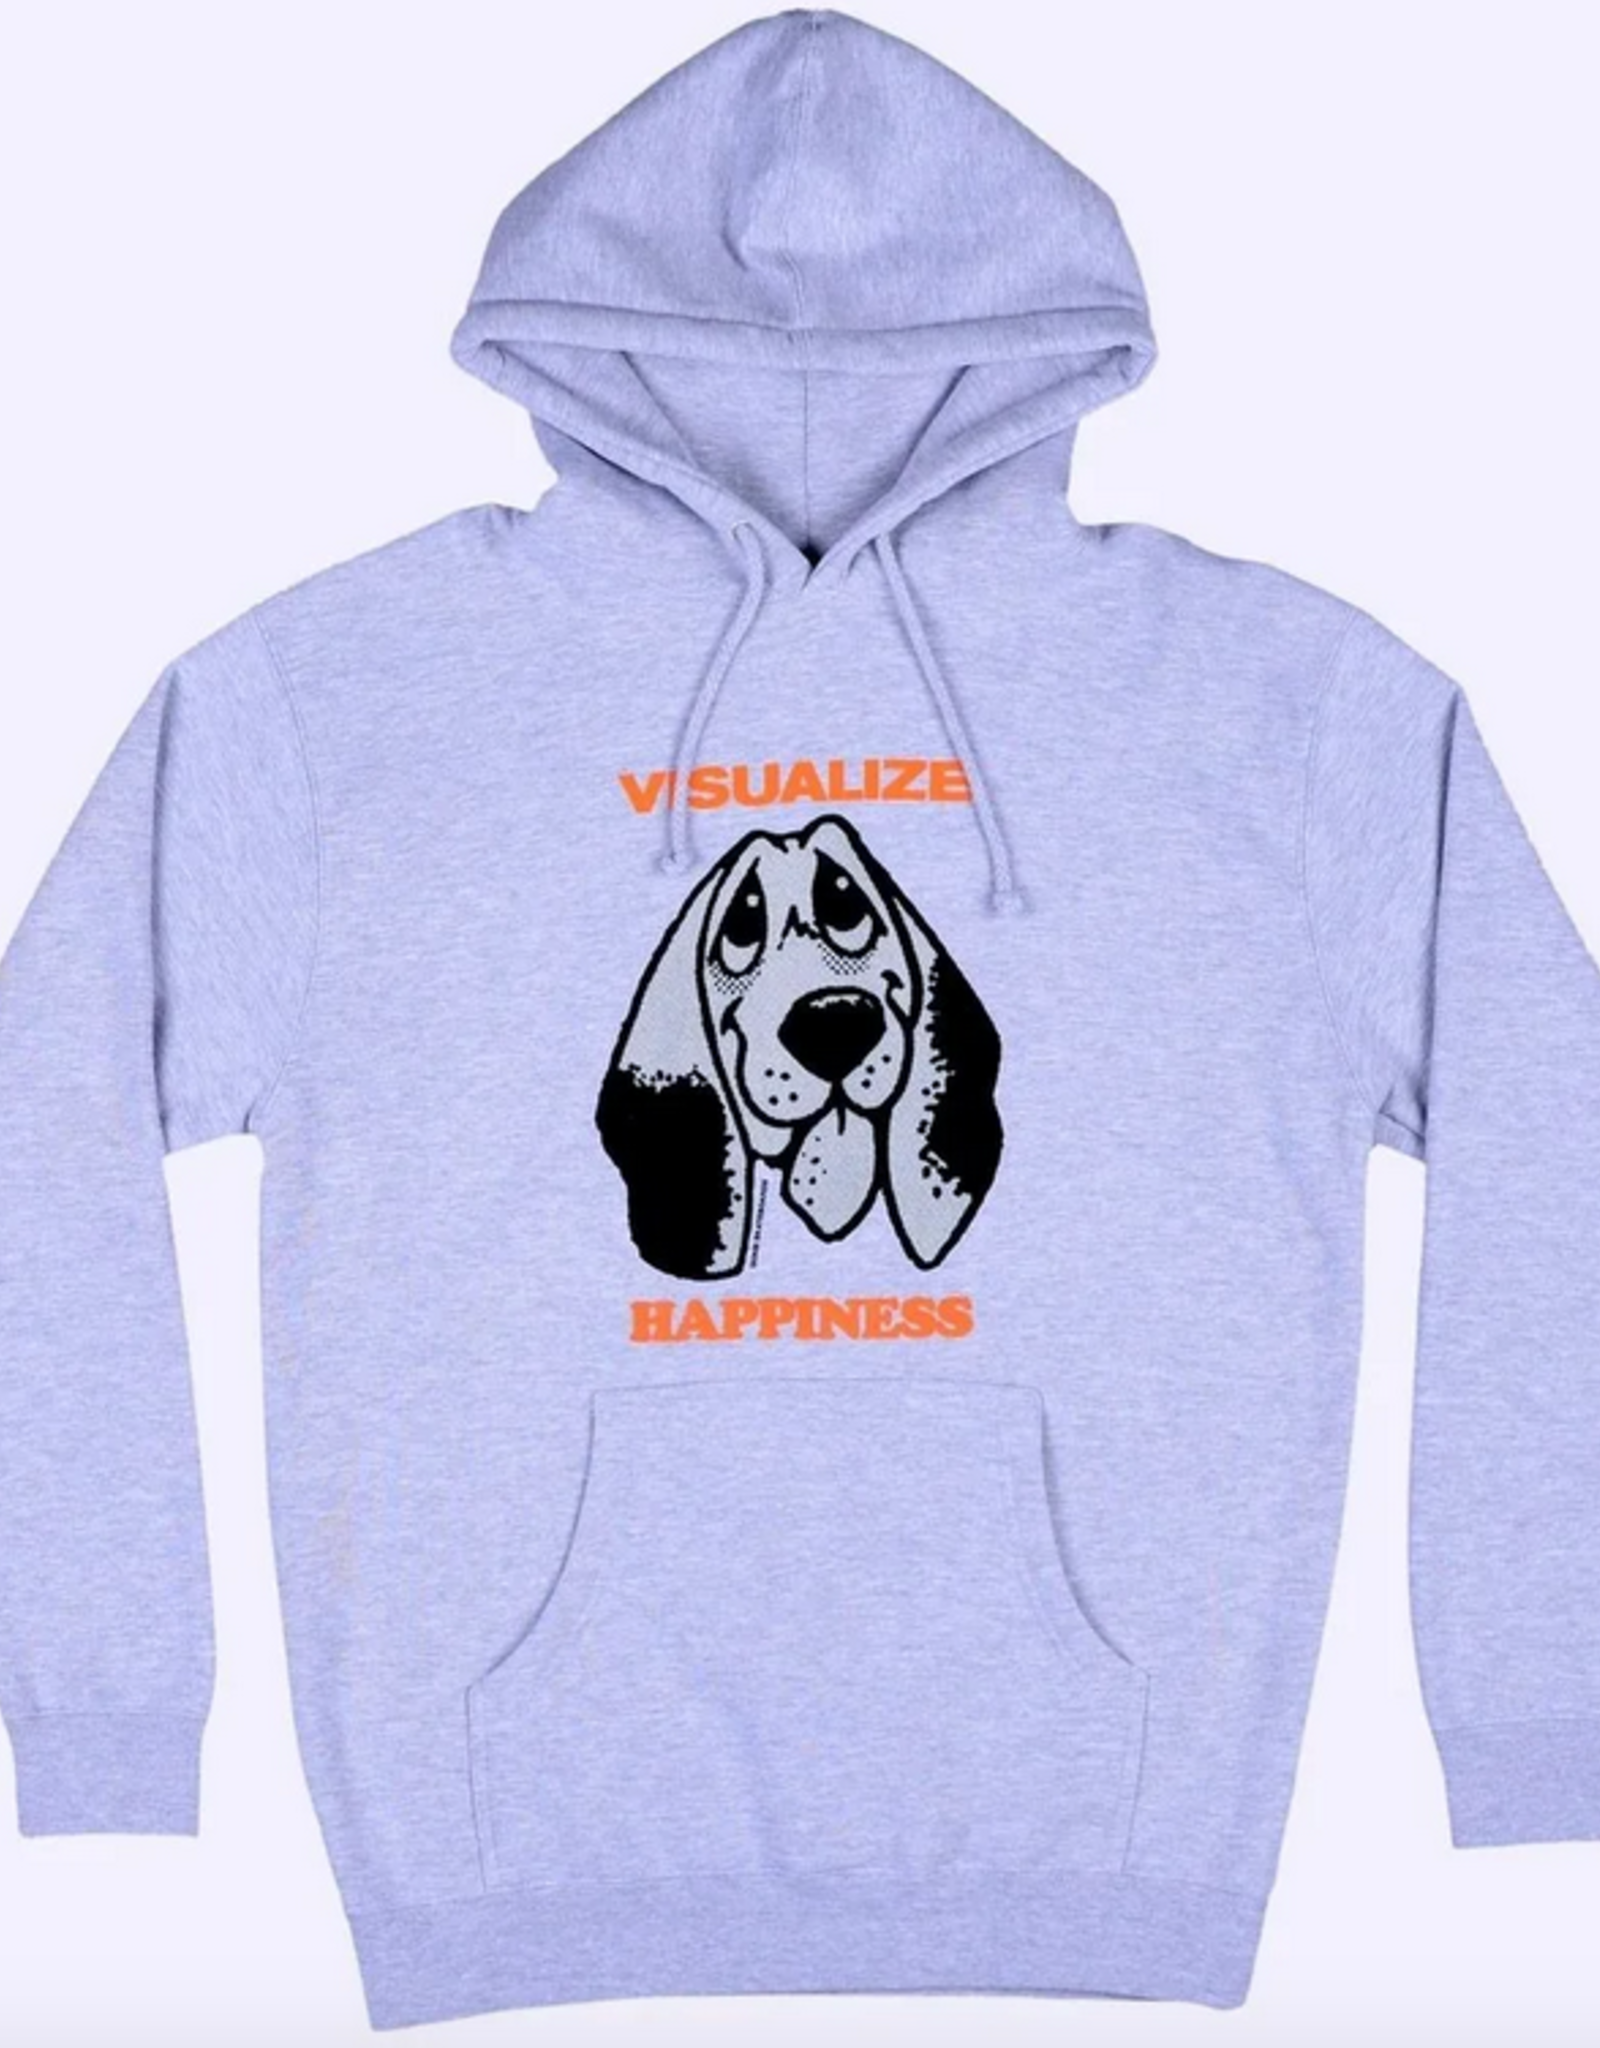 QUASI QUASI VISUALIZE HAPPINESS PO HOODIE GREY